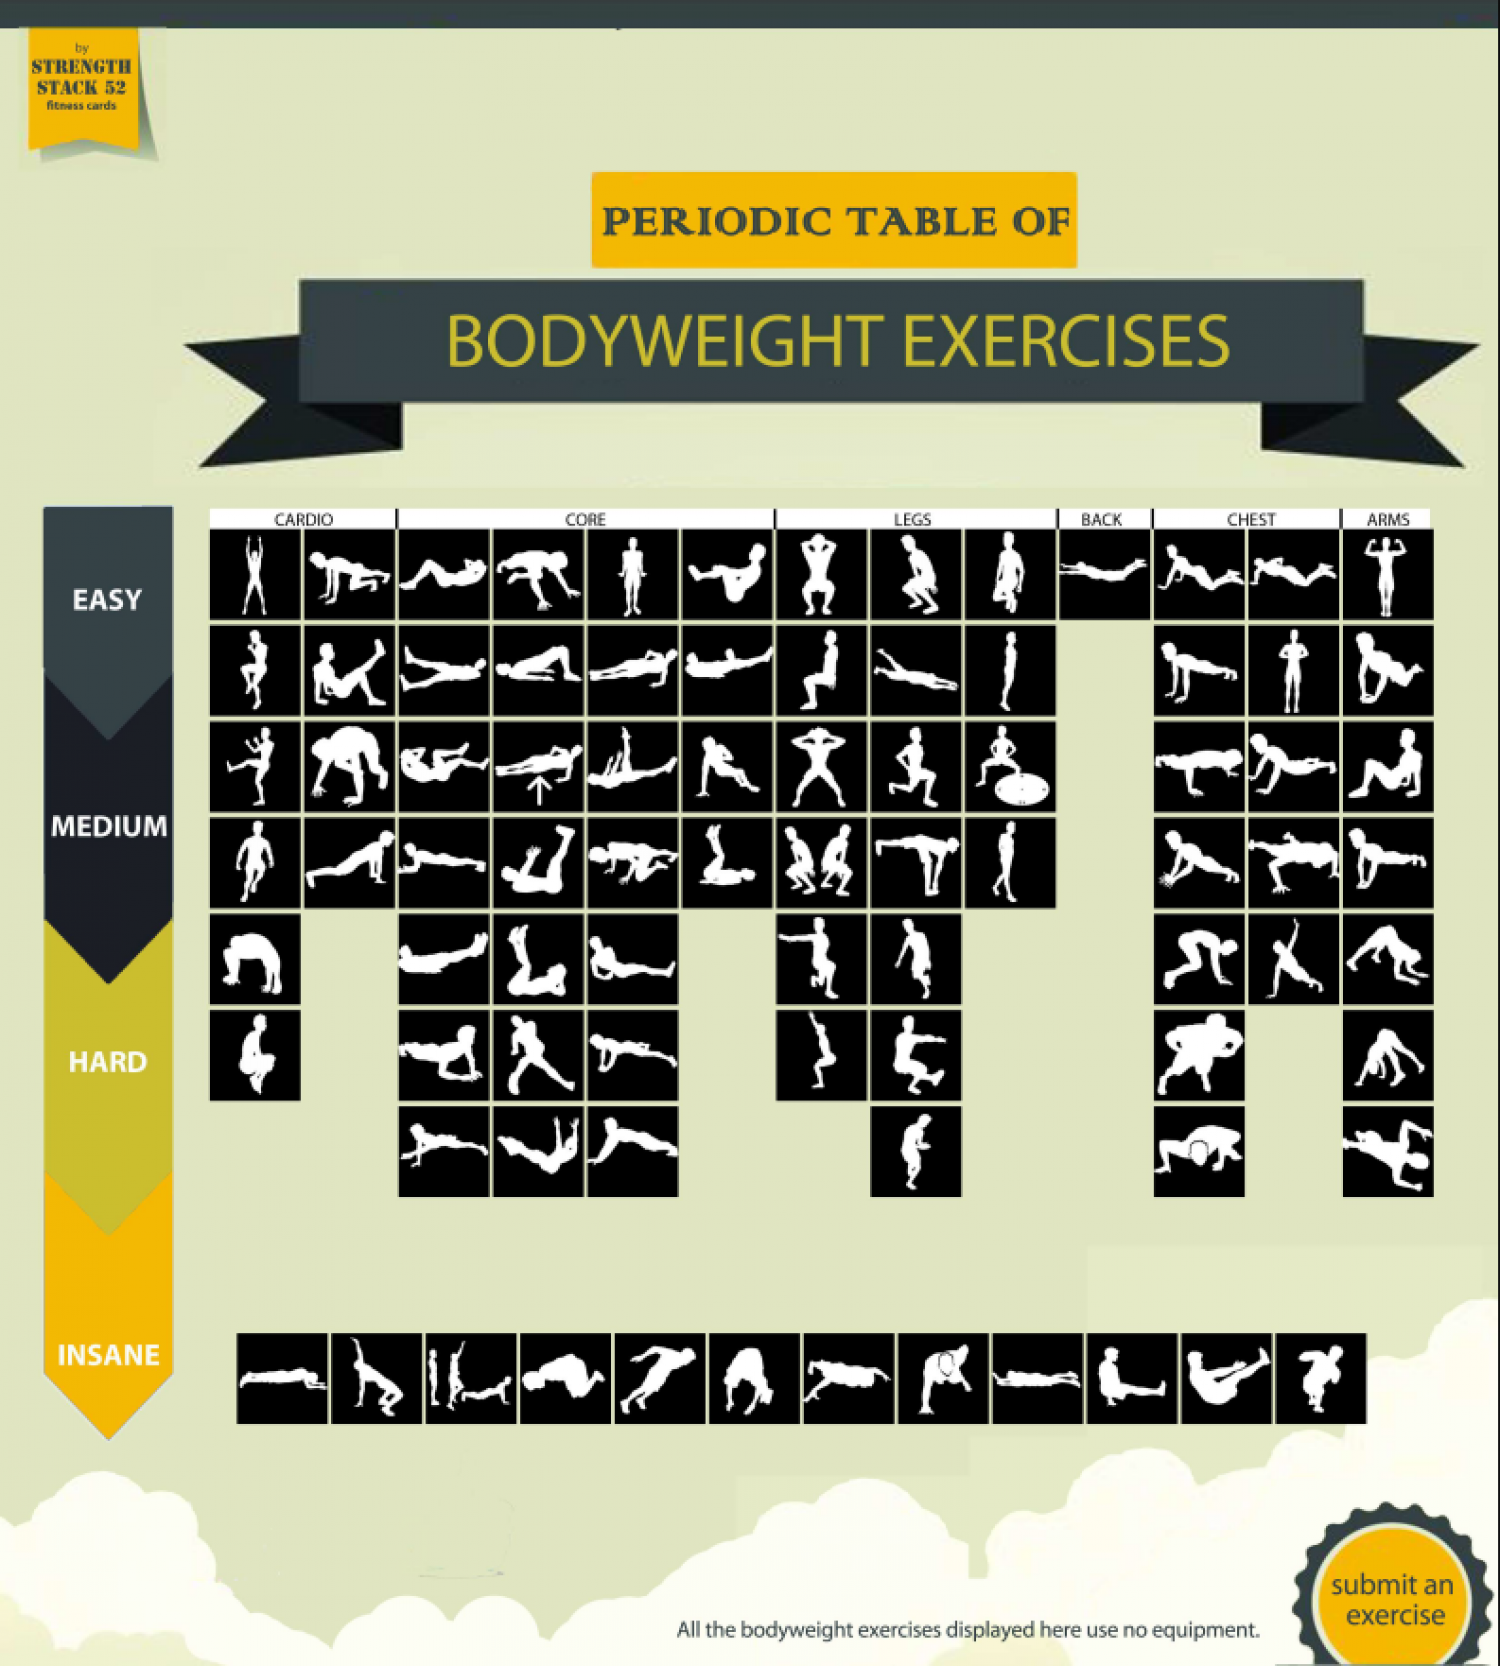 Periodic Table of Bodyweight Exercises (Clickable) Infographic